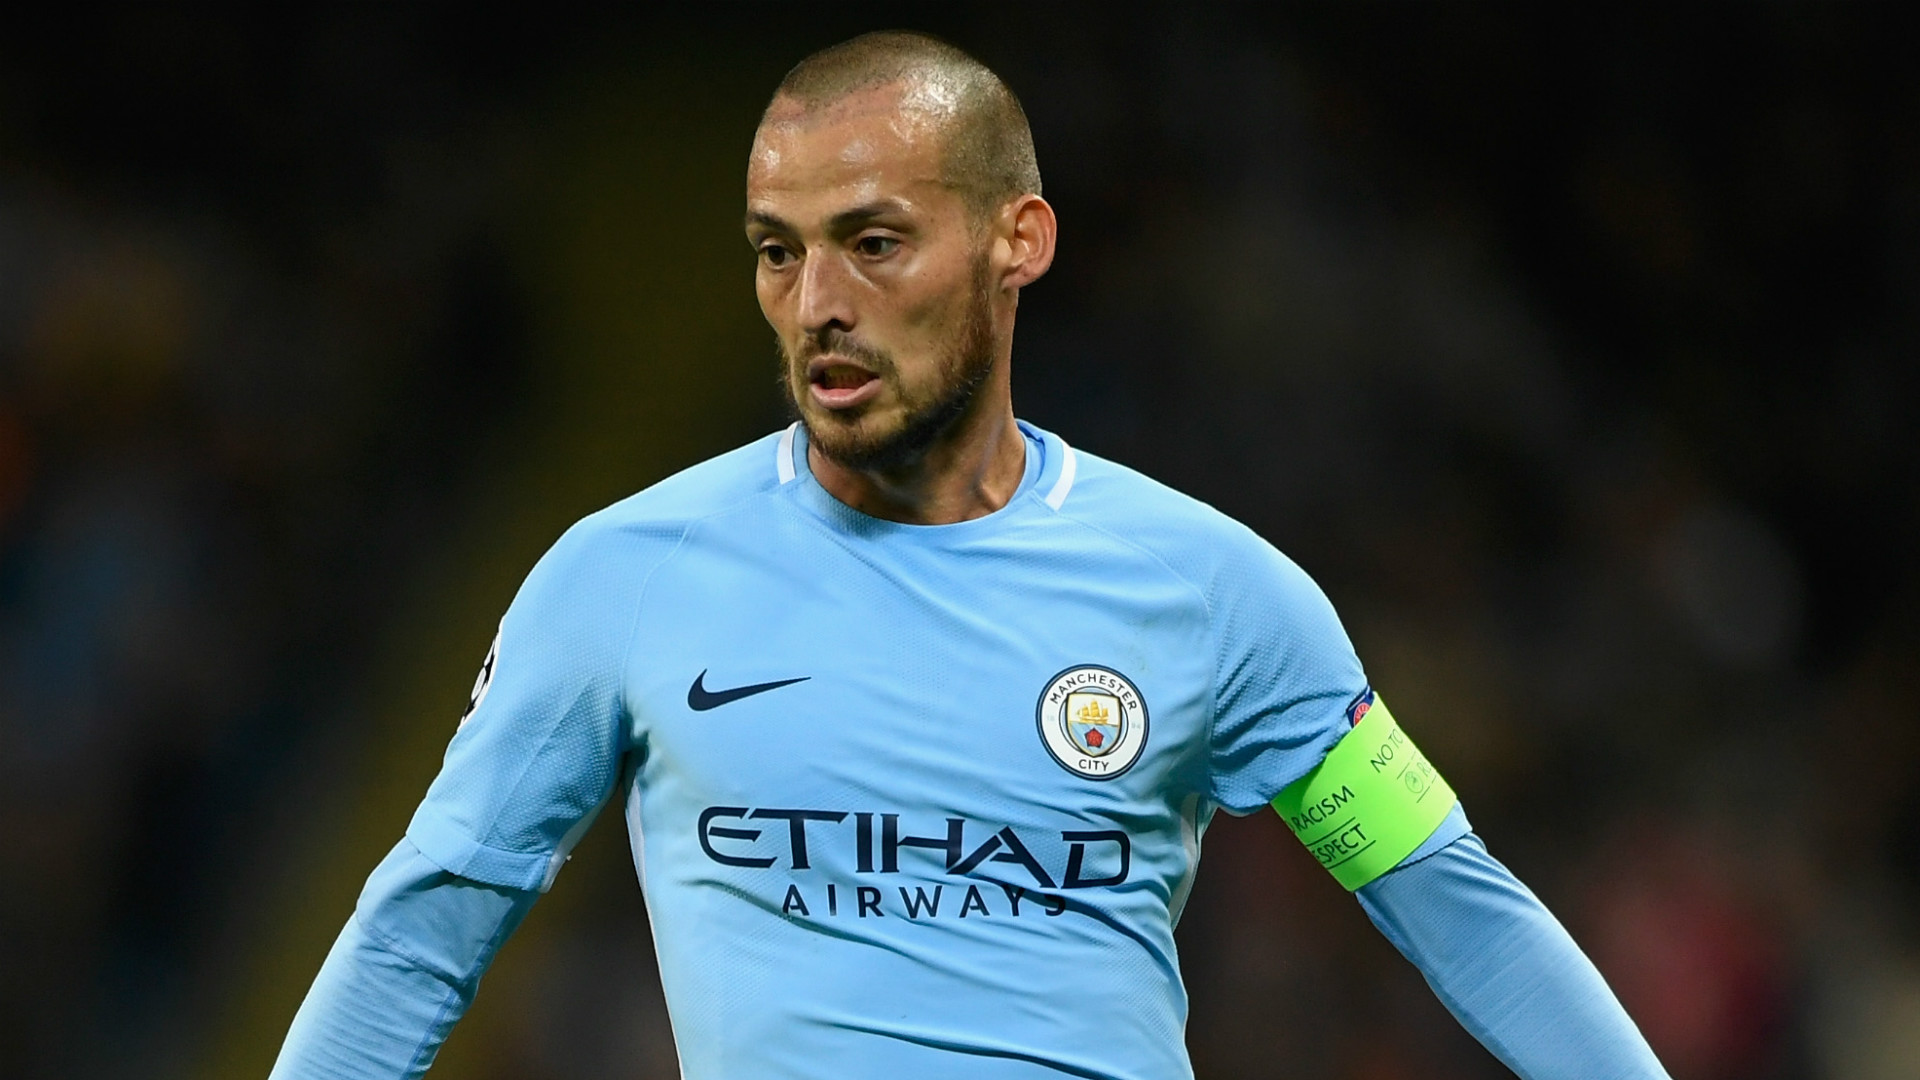 Man City Team News: Injuries, suspensions and line-up vs Man Utd